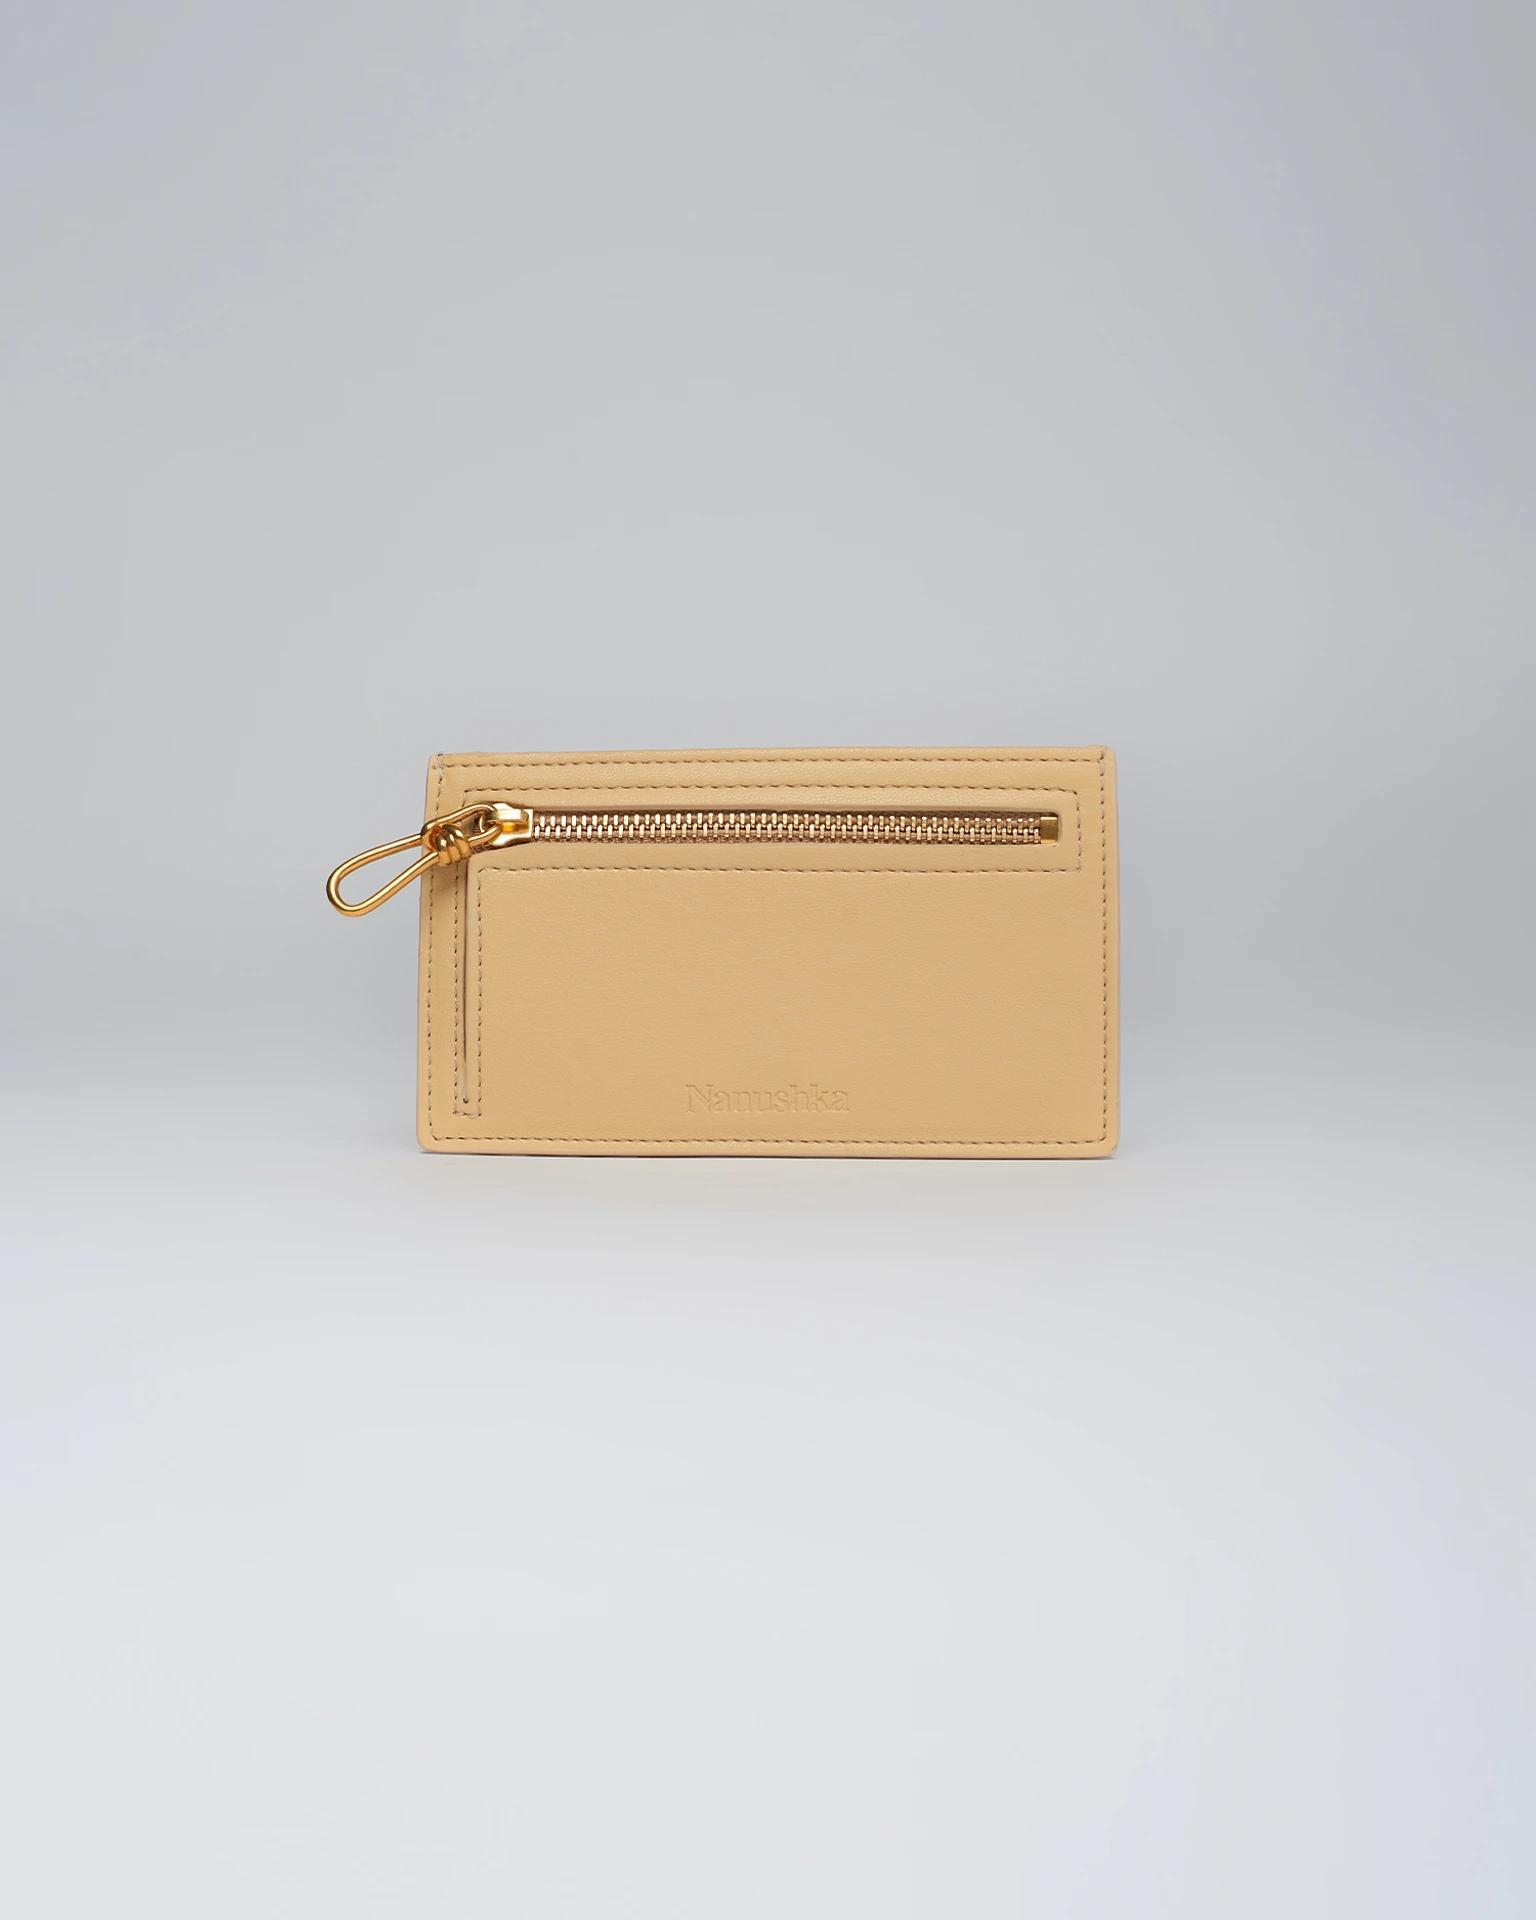 ARAXIE - Leather wallet - Sable